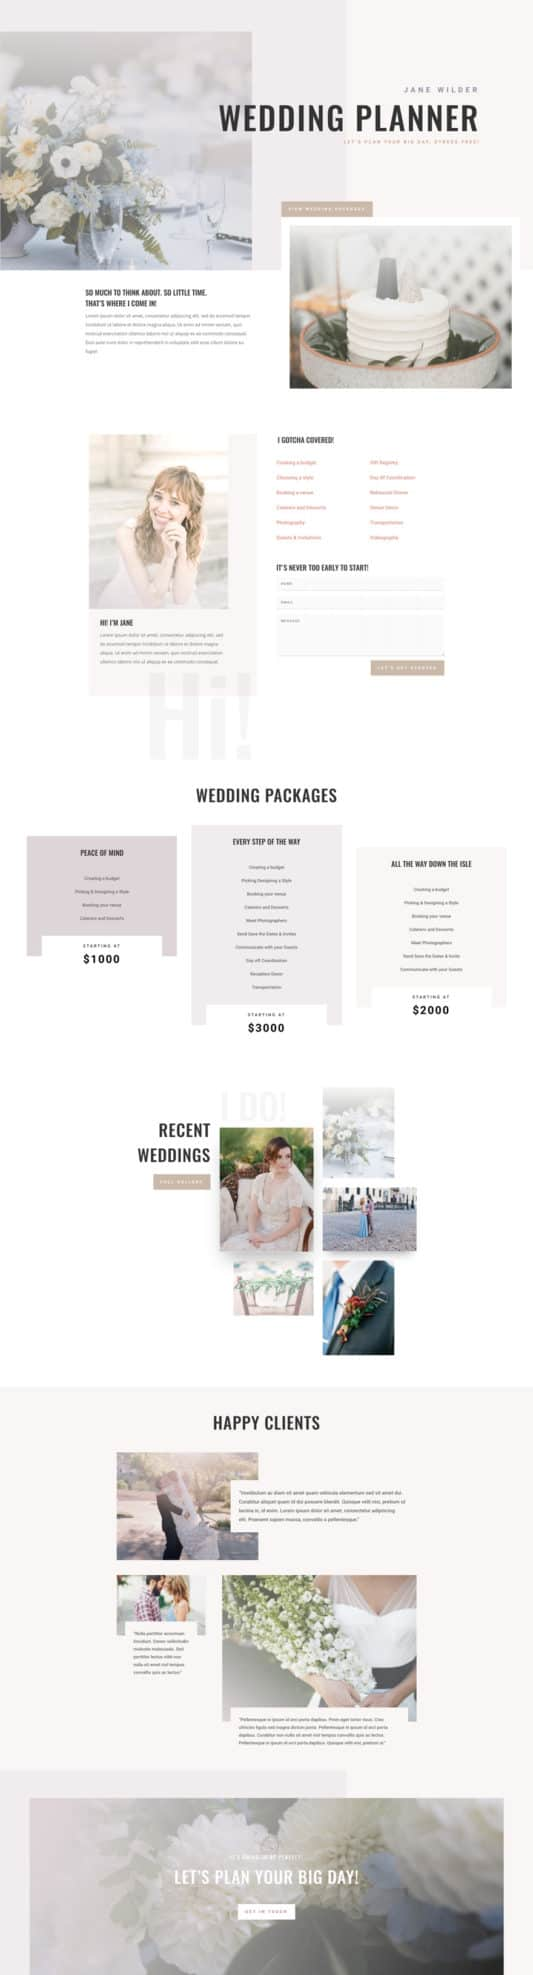 The Wedding Planner Page Style: Homepage Design 1